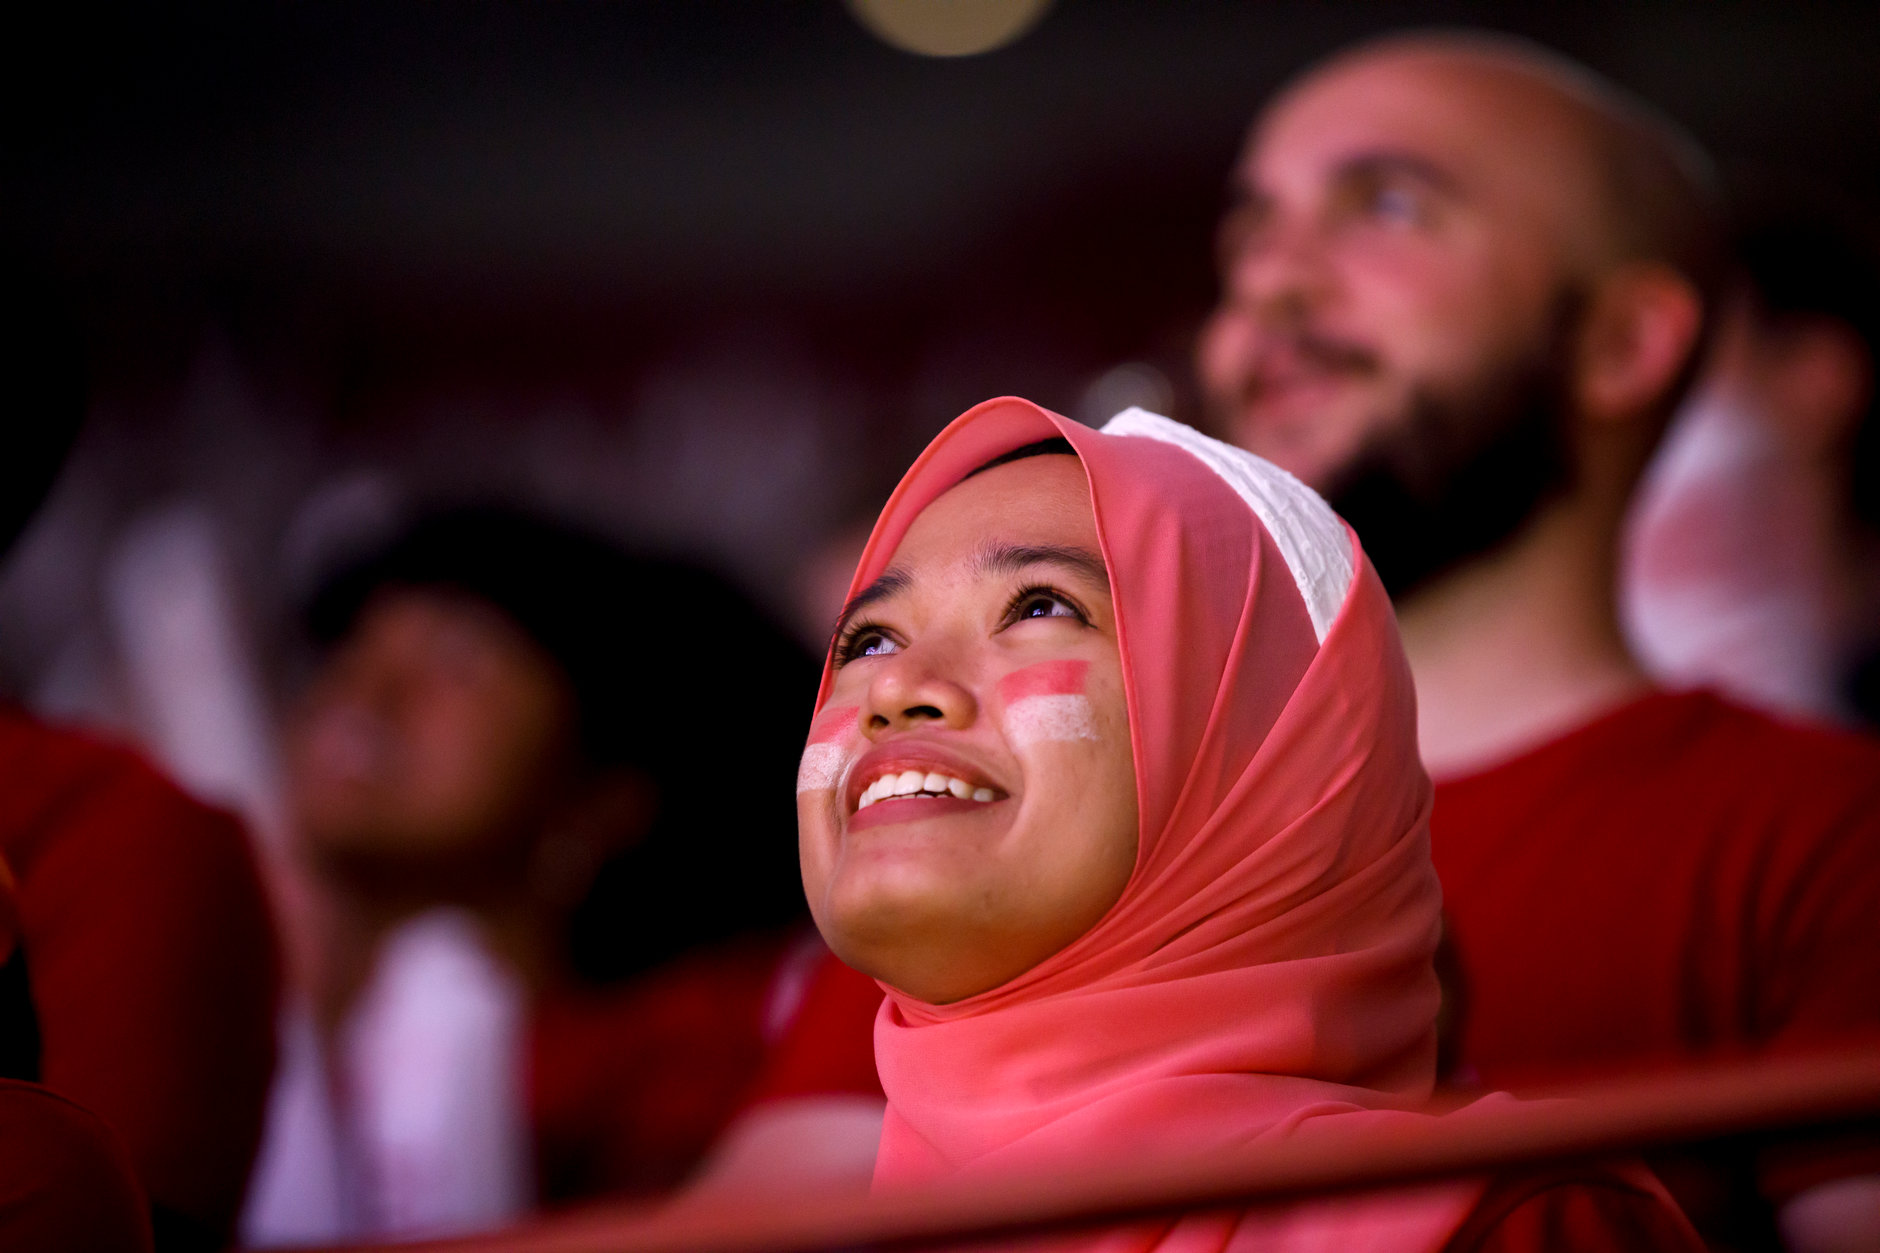 A student watches the proceedings during the Traditions and Spirit of IU at Assembly Hall on Friday, Aug. 17, 2018. (James Brosher/IU Communications)